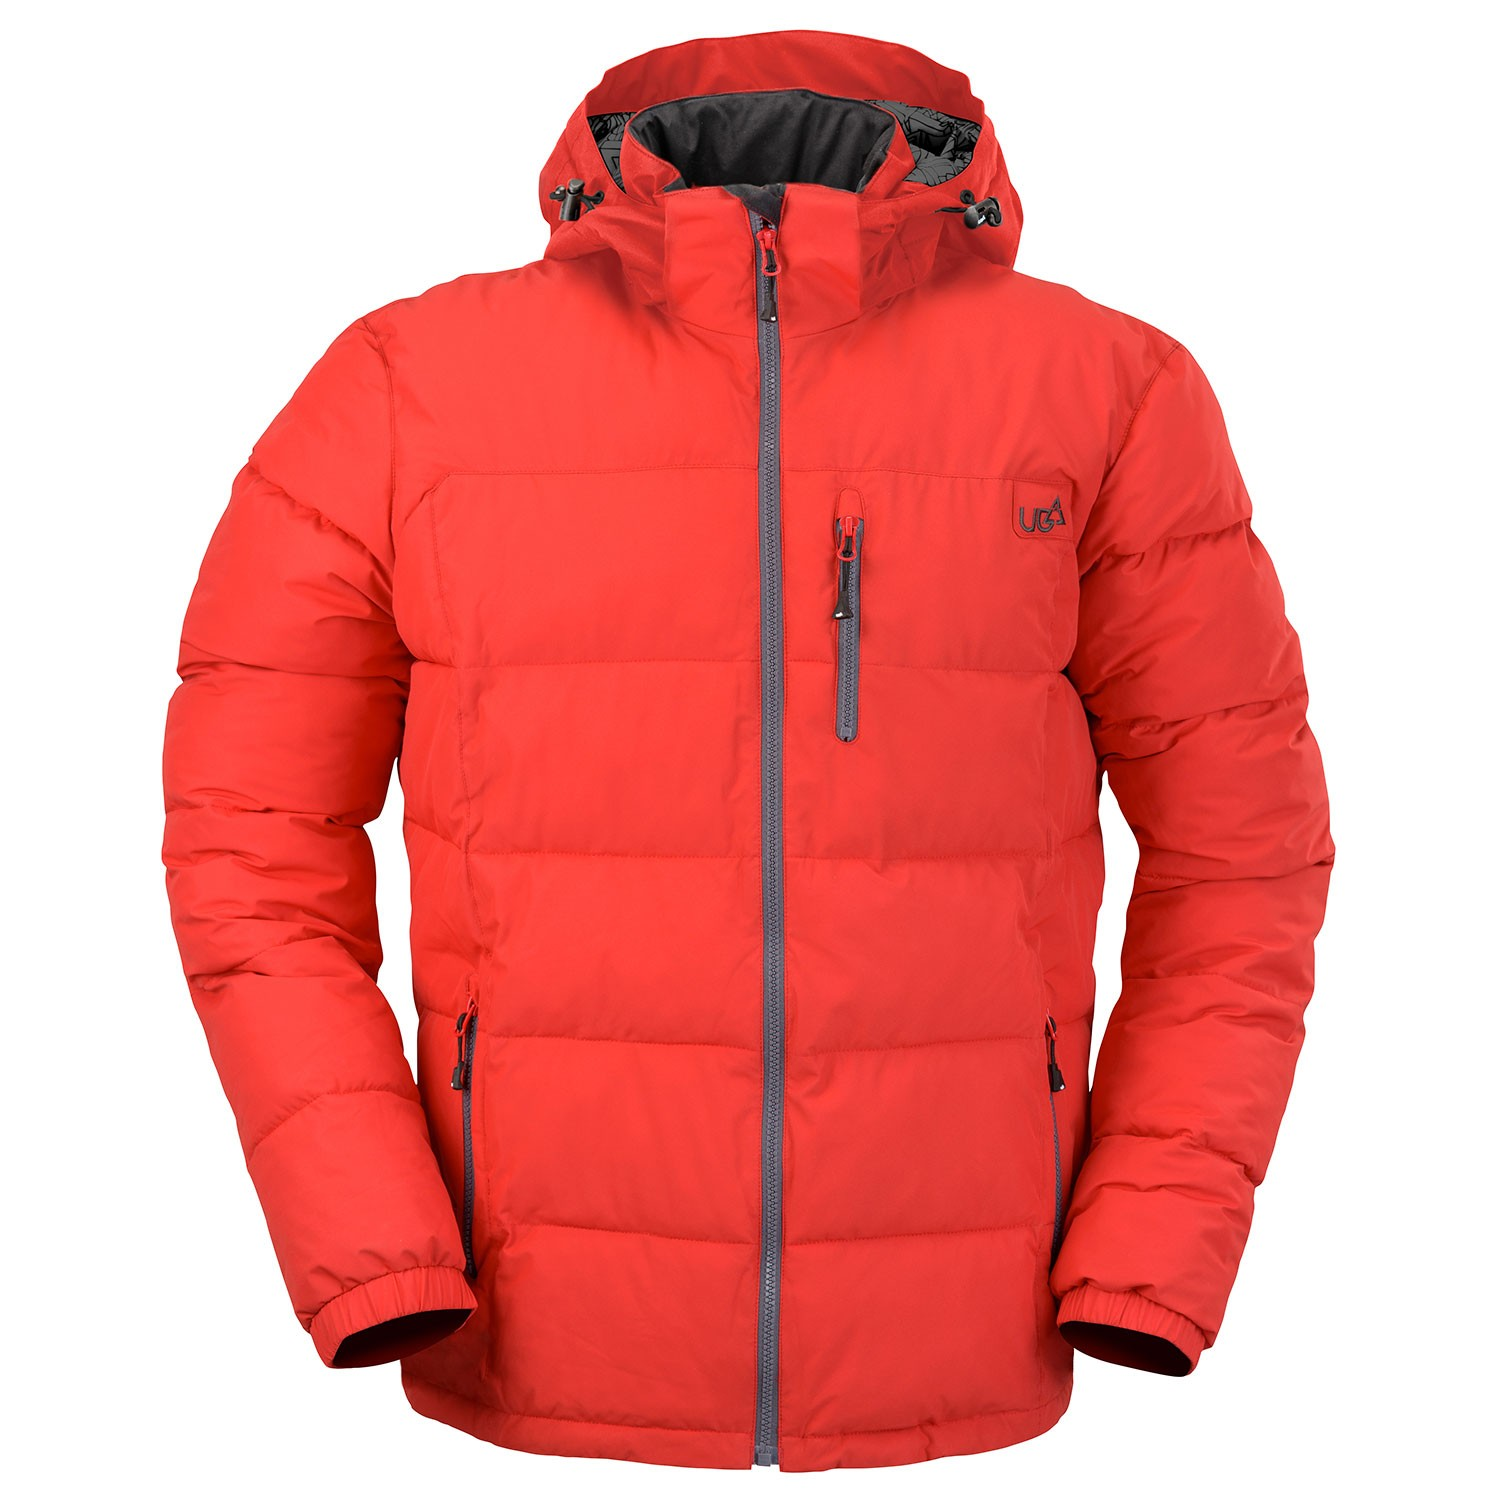 Mens Red Puffer Jacket Tocan- Free Delivery Over £20 - Urban Beach c94a302b3